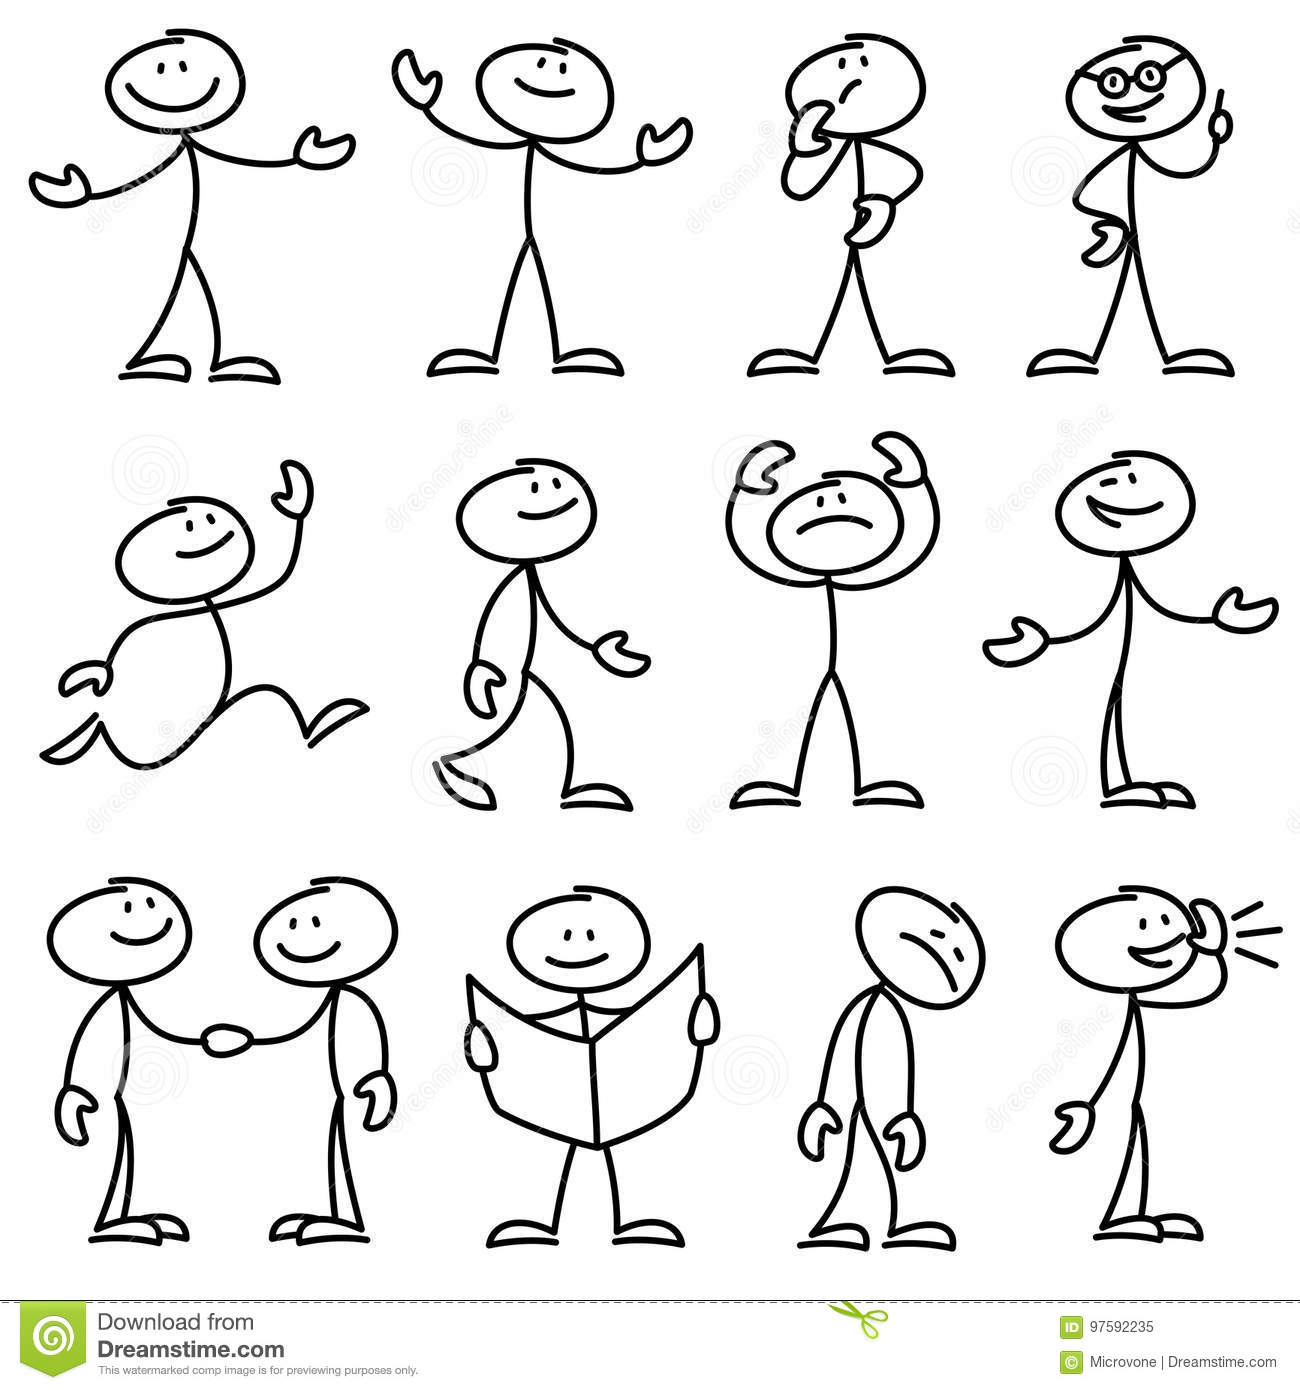 Cartoon Hand Drawn Stick Man In Different Poses Vector Set